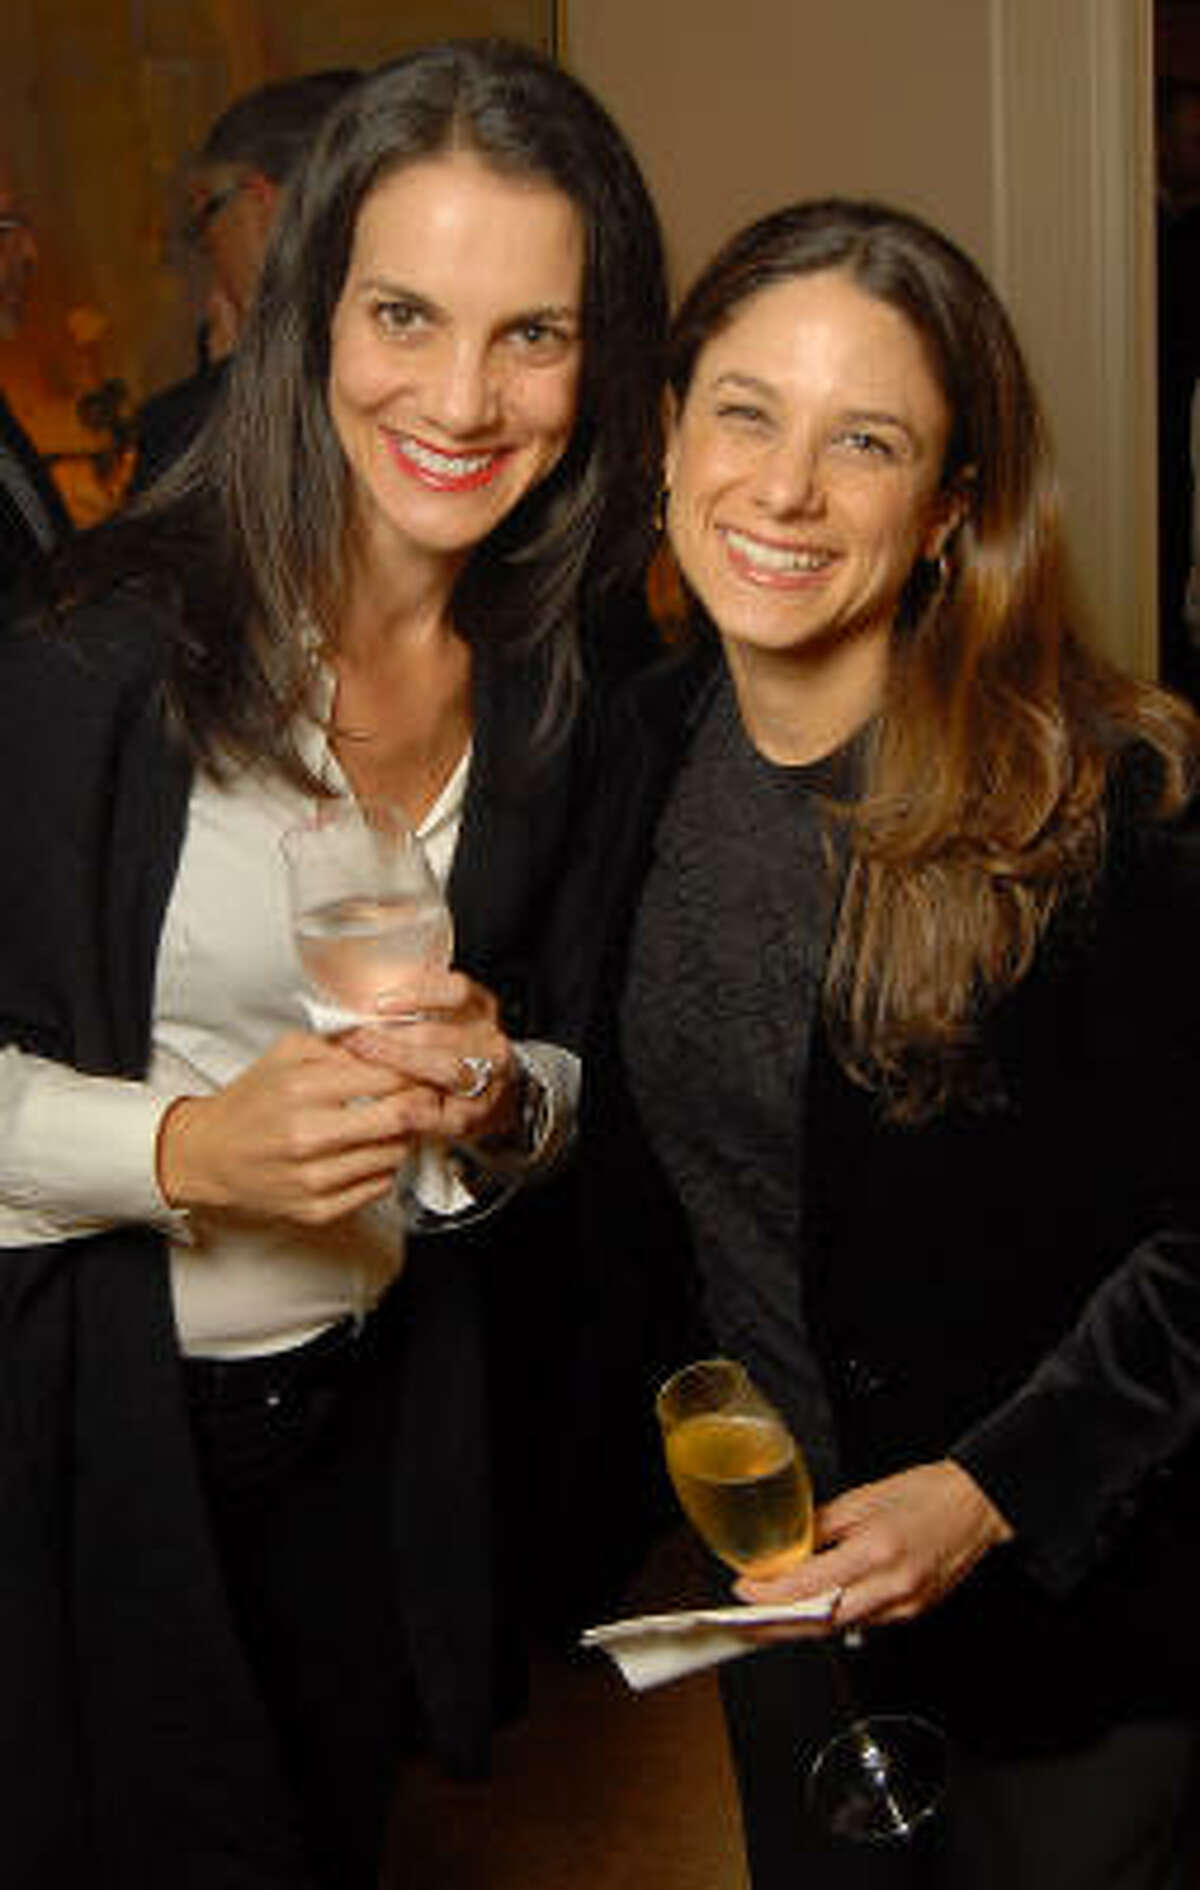 Abbe Forman and Karen Farber